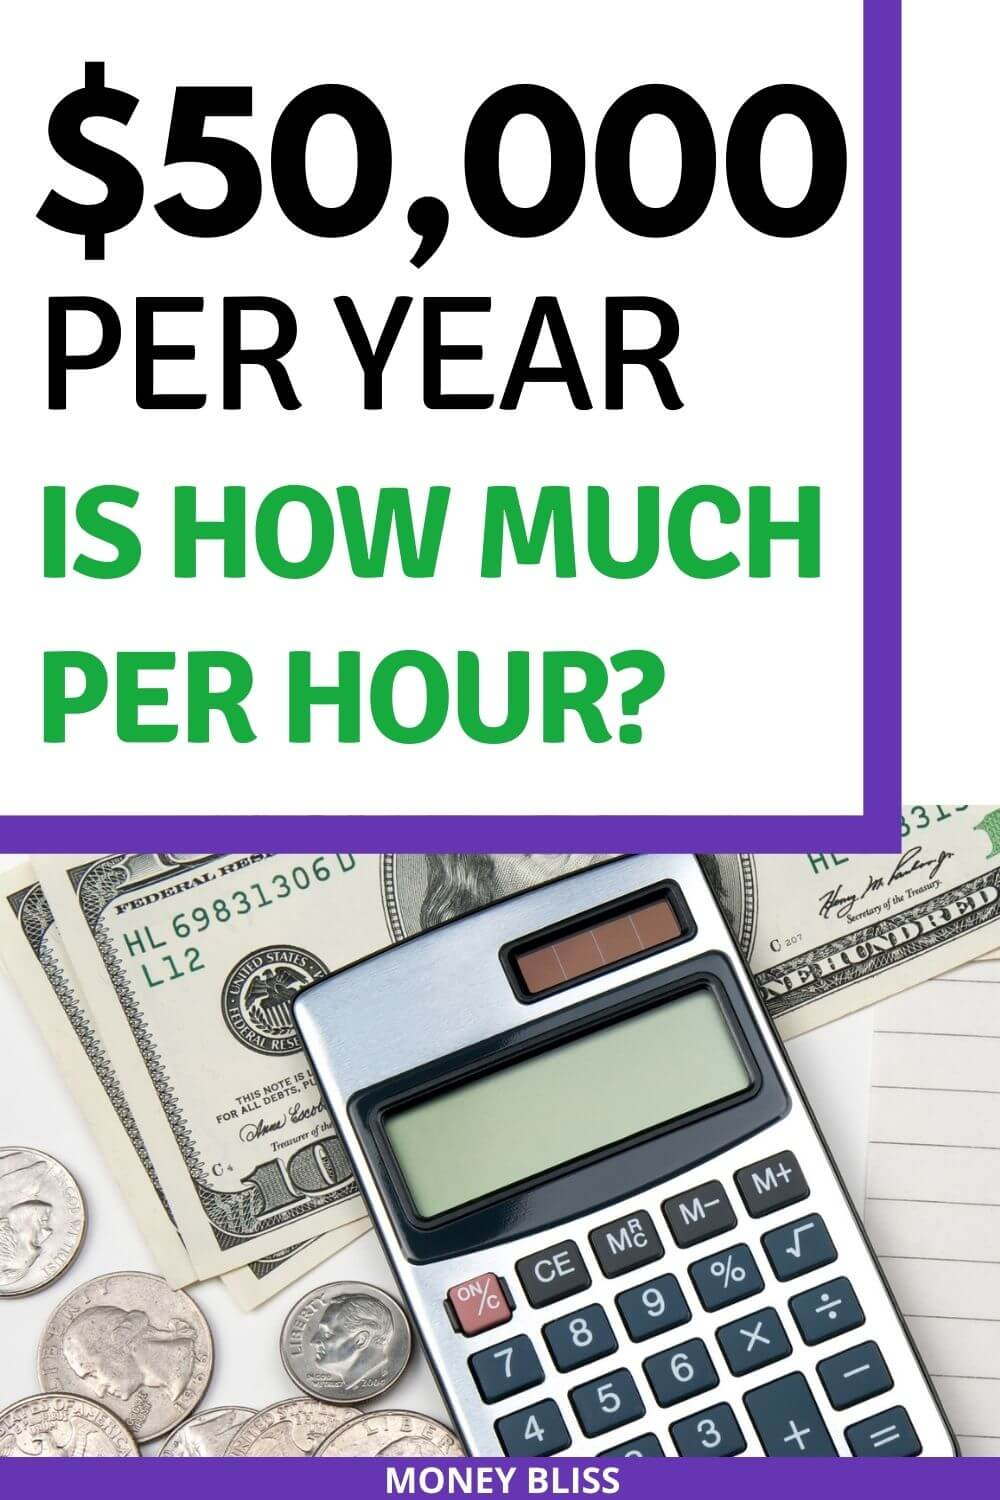 $50,000 a year is how much an hour? Learn how much your 50k salary is hourly. Plus find a 50000 salary budget to live the lifestyle you want. Find out how much you make hourly, daily, weekly, biweekly and monthly. This post from Money Bliss covers single person as well as a family. Is $50k a good salary? Click here and find out.